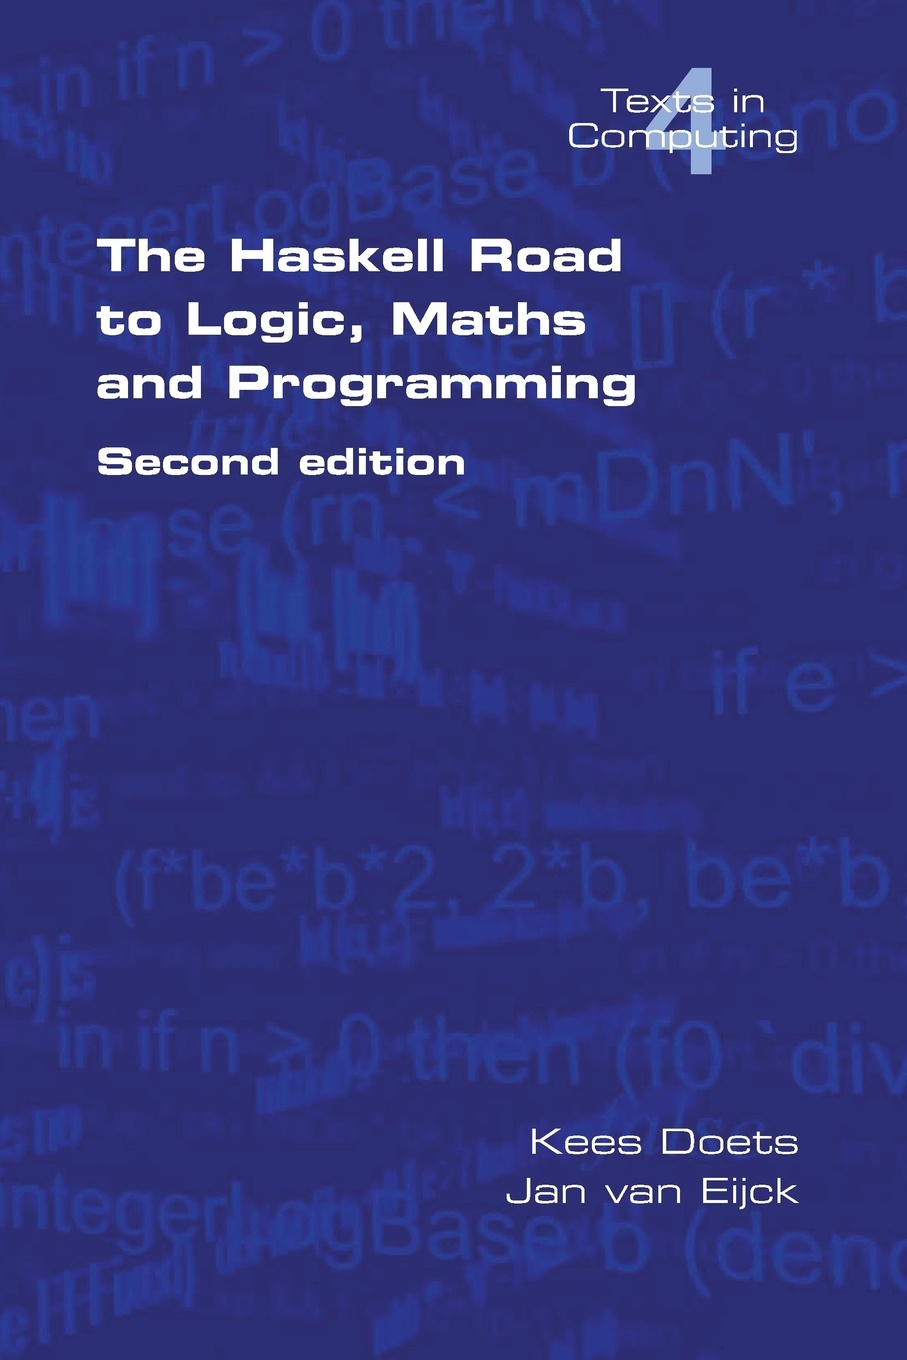 Kees Doets, Van Jan Eijck The Haskell Road to Logic, Maths and Programming. Second Edition